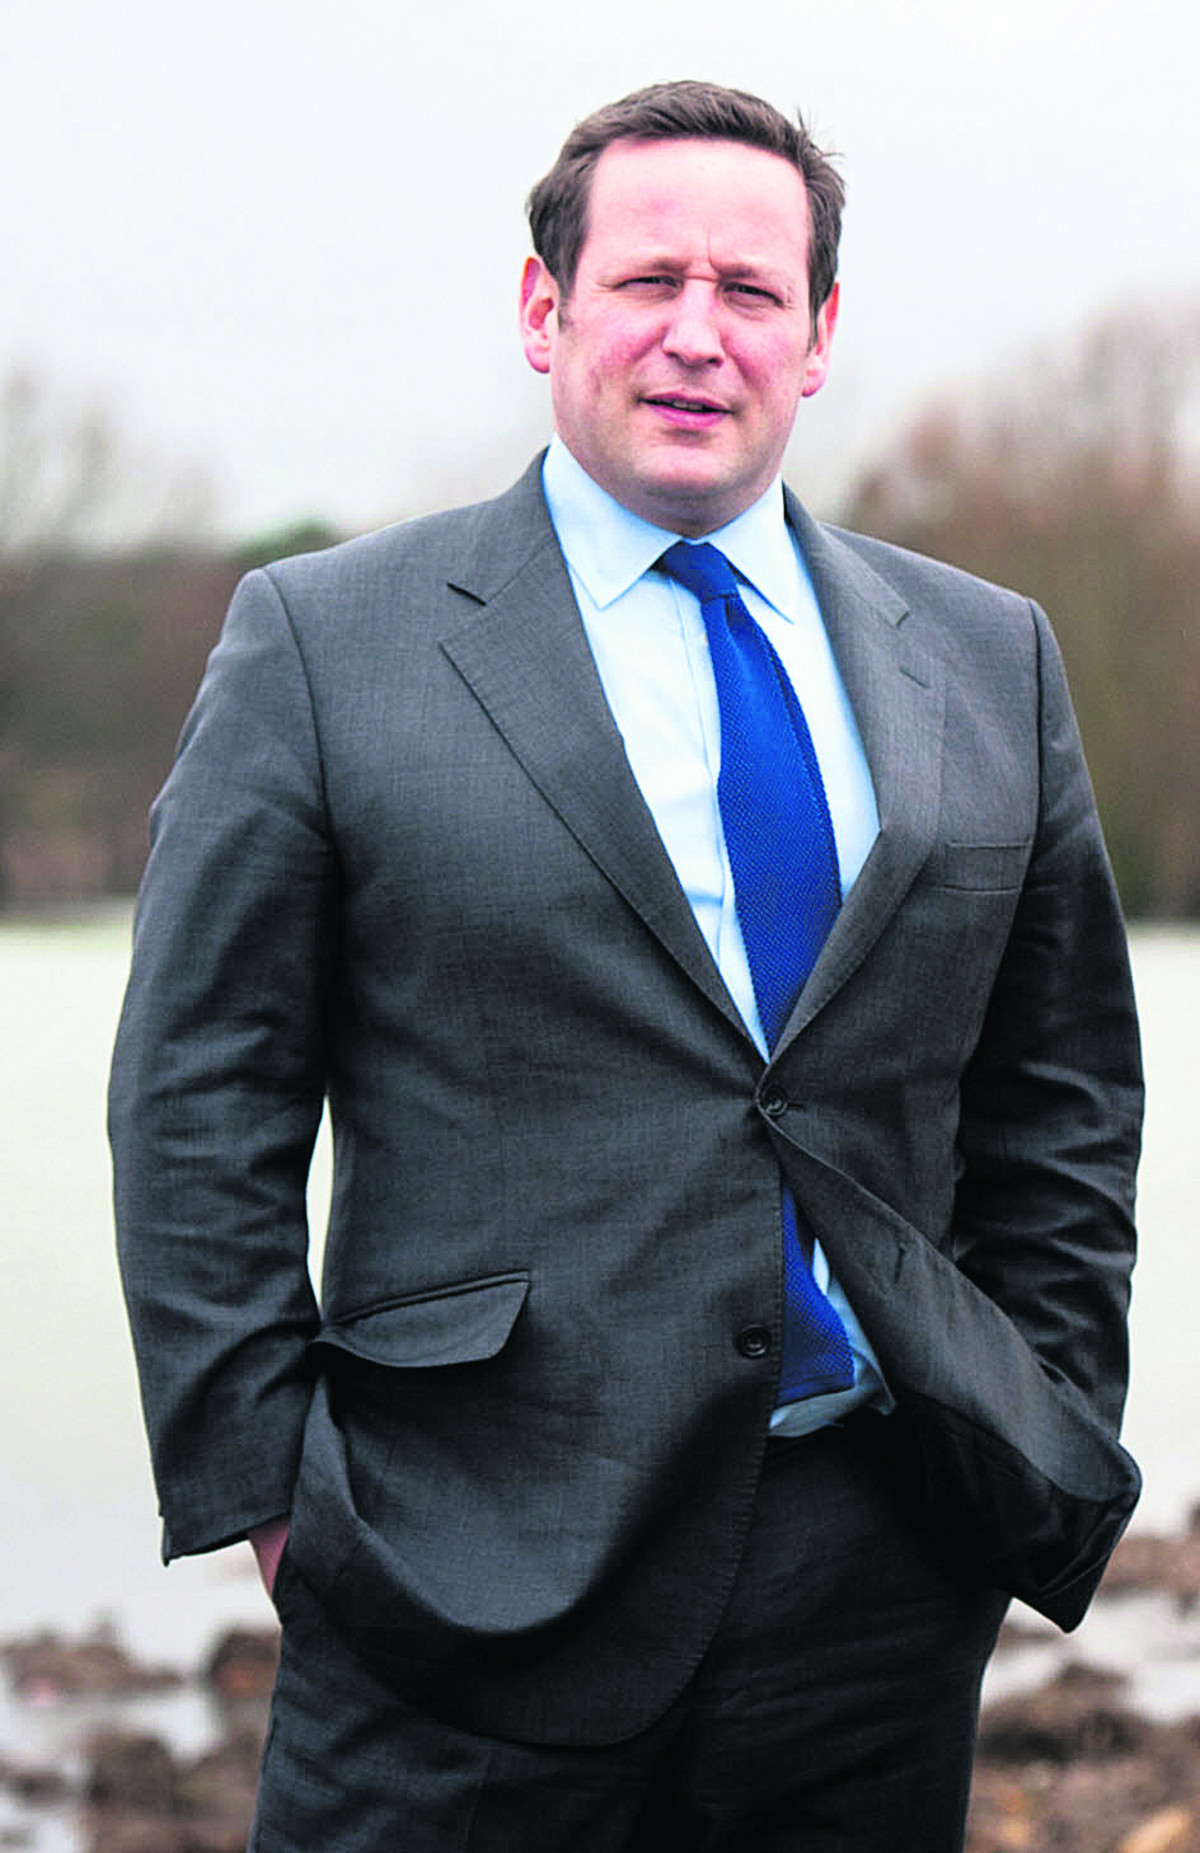 Garden city idea is back on the agenda